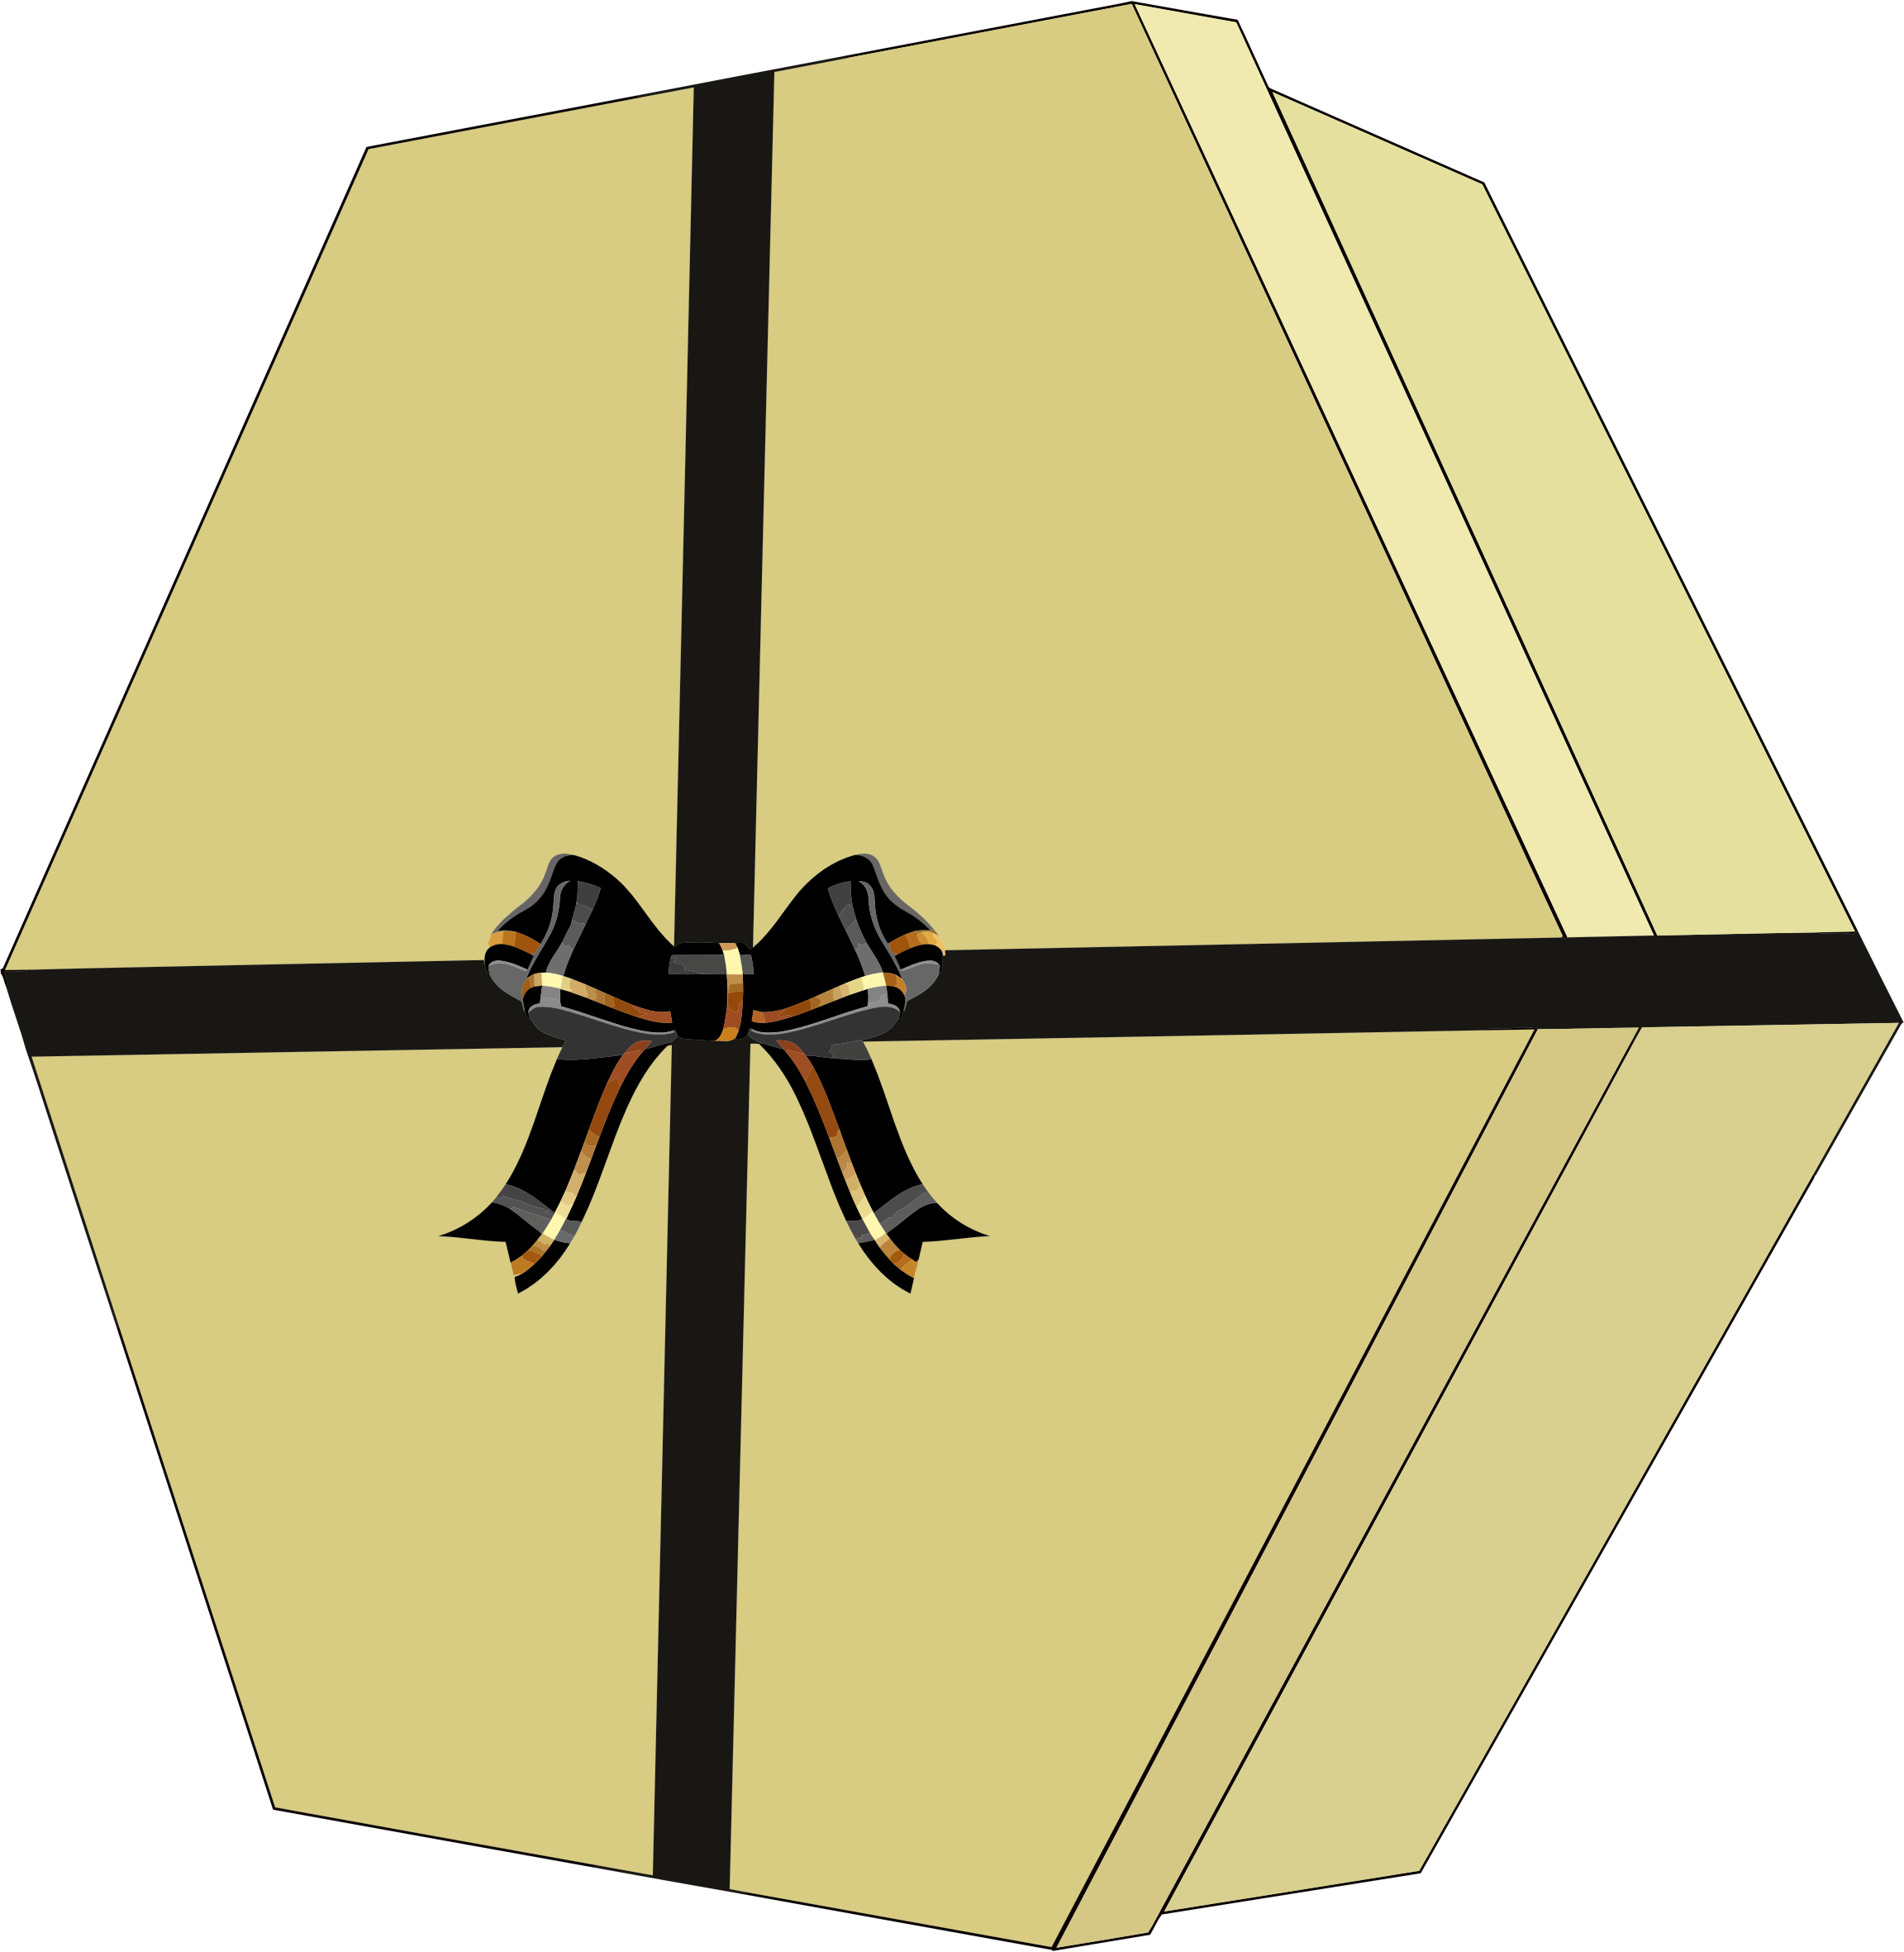 Gift Box with Decorative Bow Ribbon by GDJ